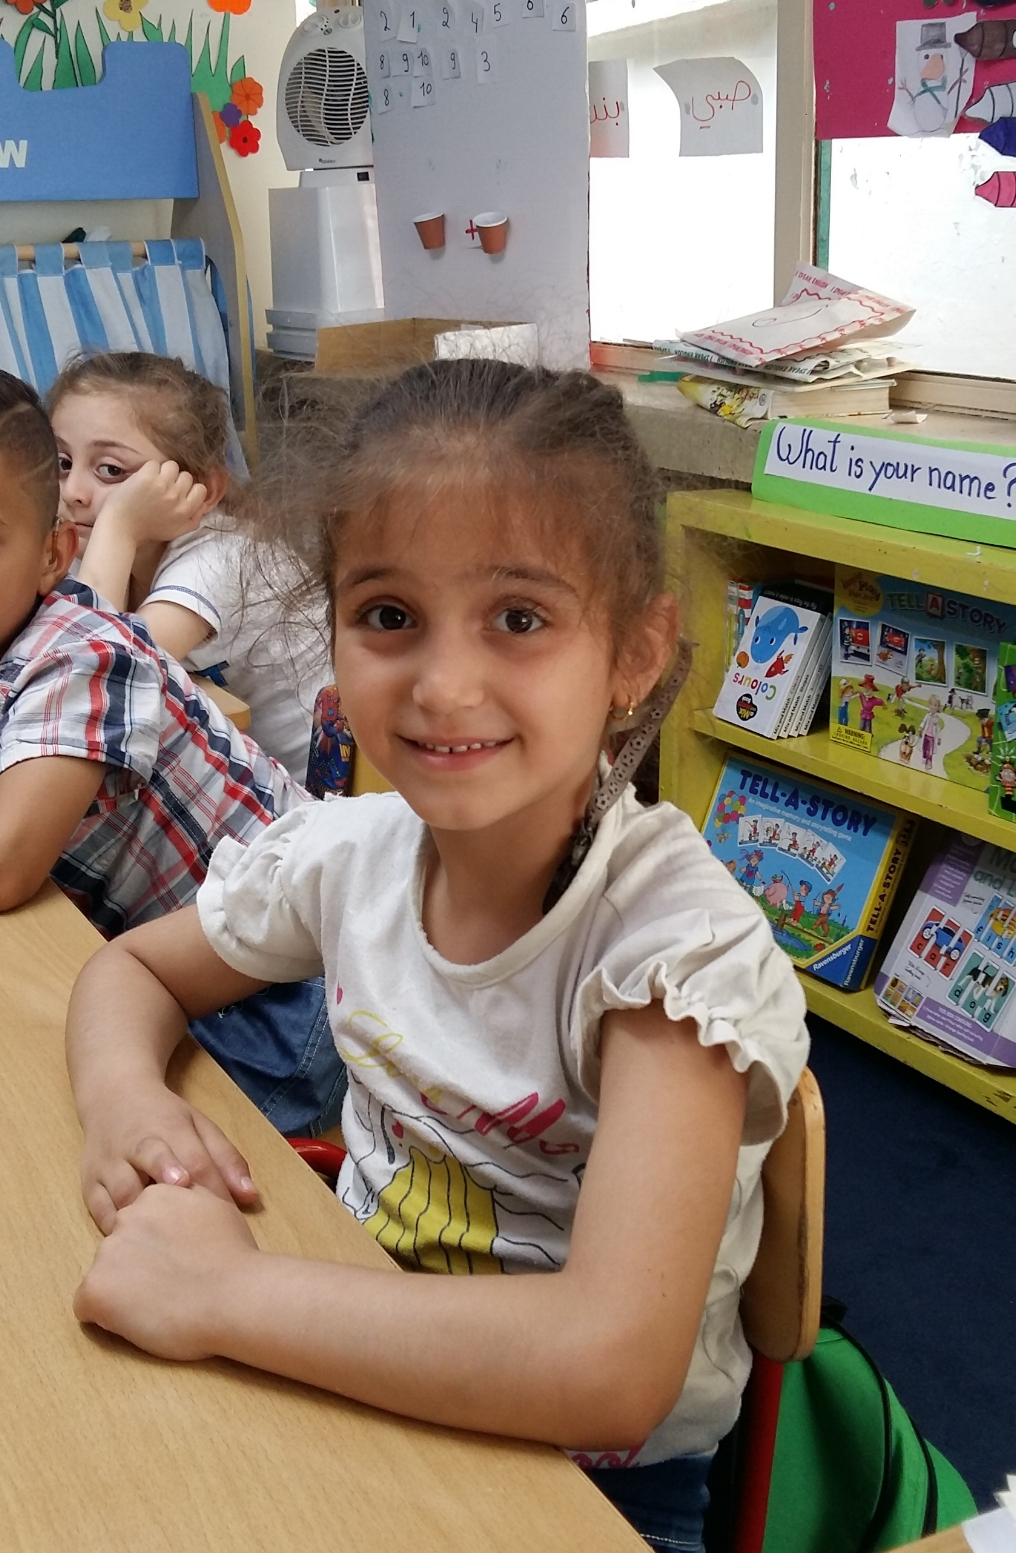 Lougain - Lougain is a 6 year old Syrian refugee. She came to FAID (WDR Partner) having been turned away by every other deaf school because she is Syrian and had significant behaviour problems.  When she first came to FAID, she had virtually no way of communicating which made her very frustrated, angry and quite aggressive.Her teacher at FAID says,